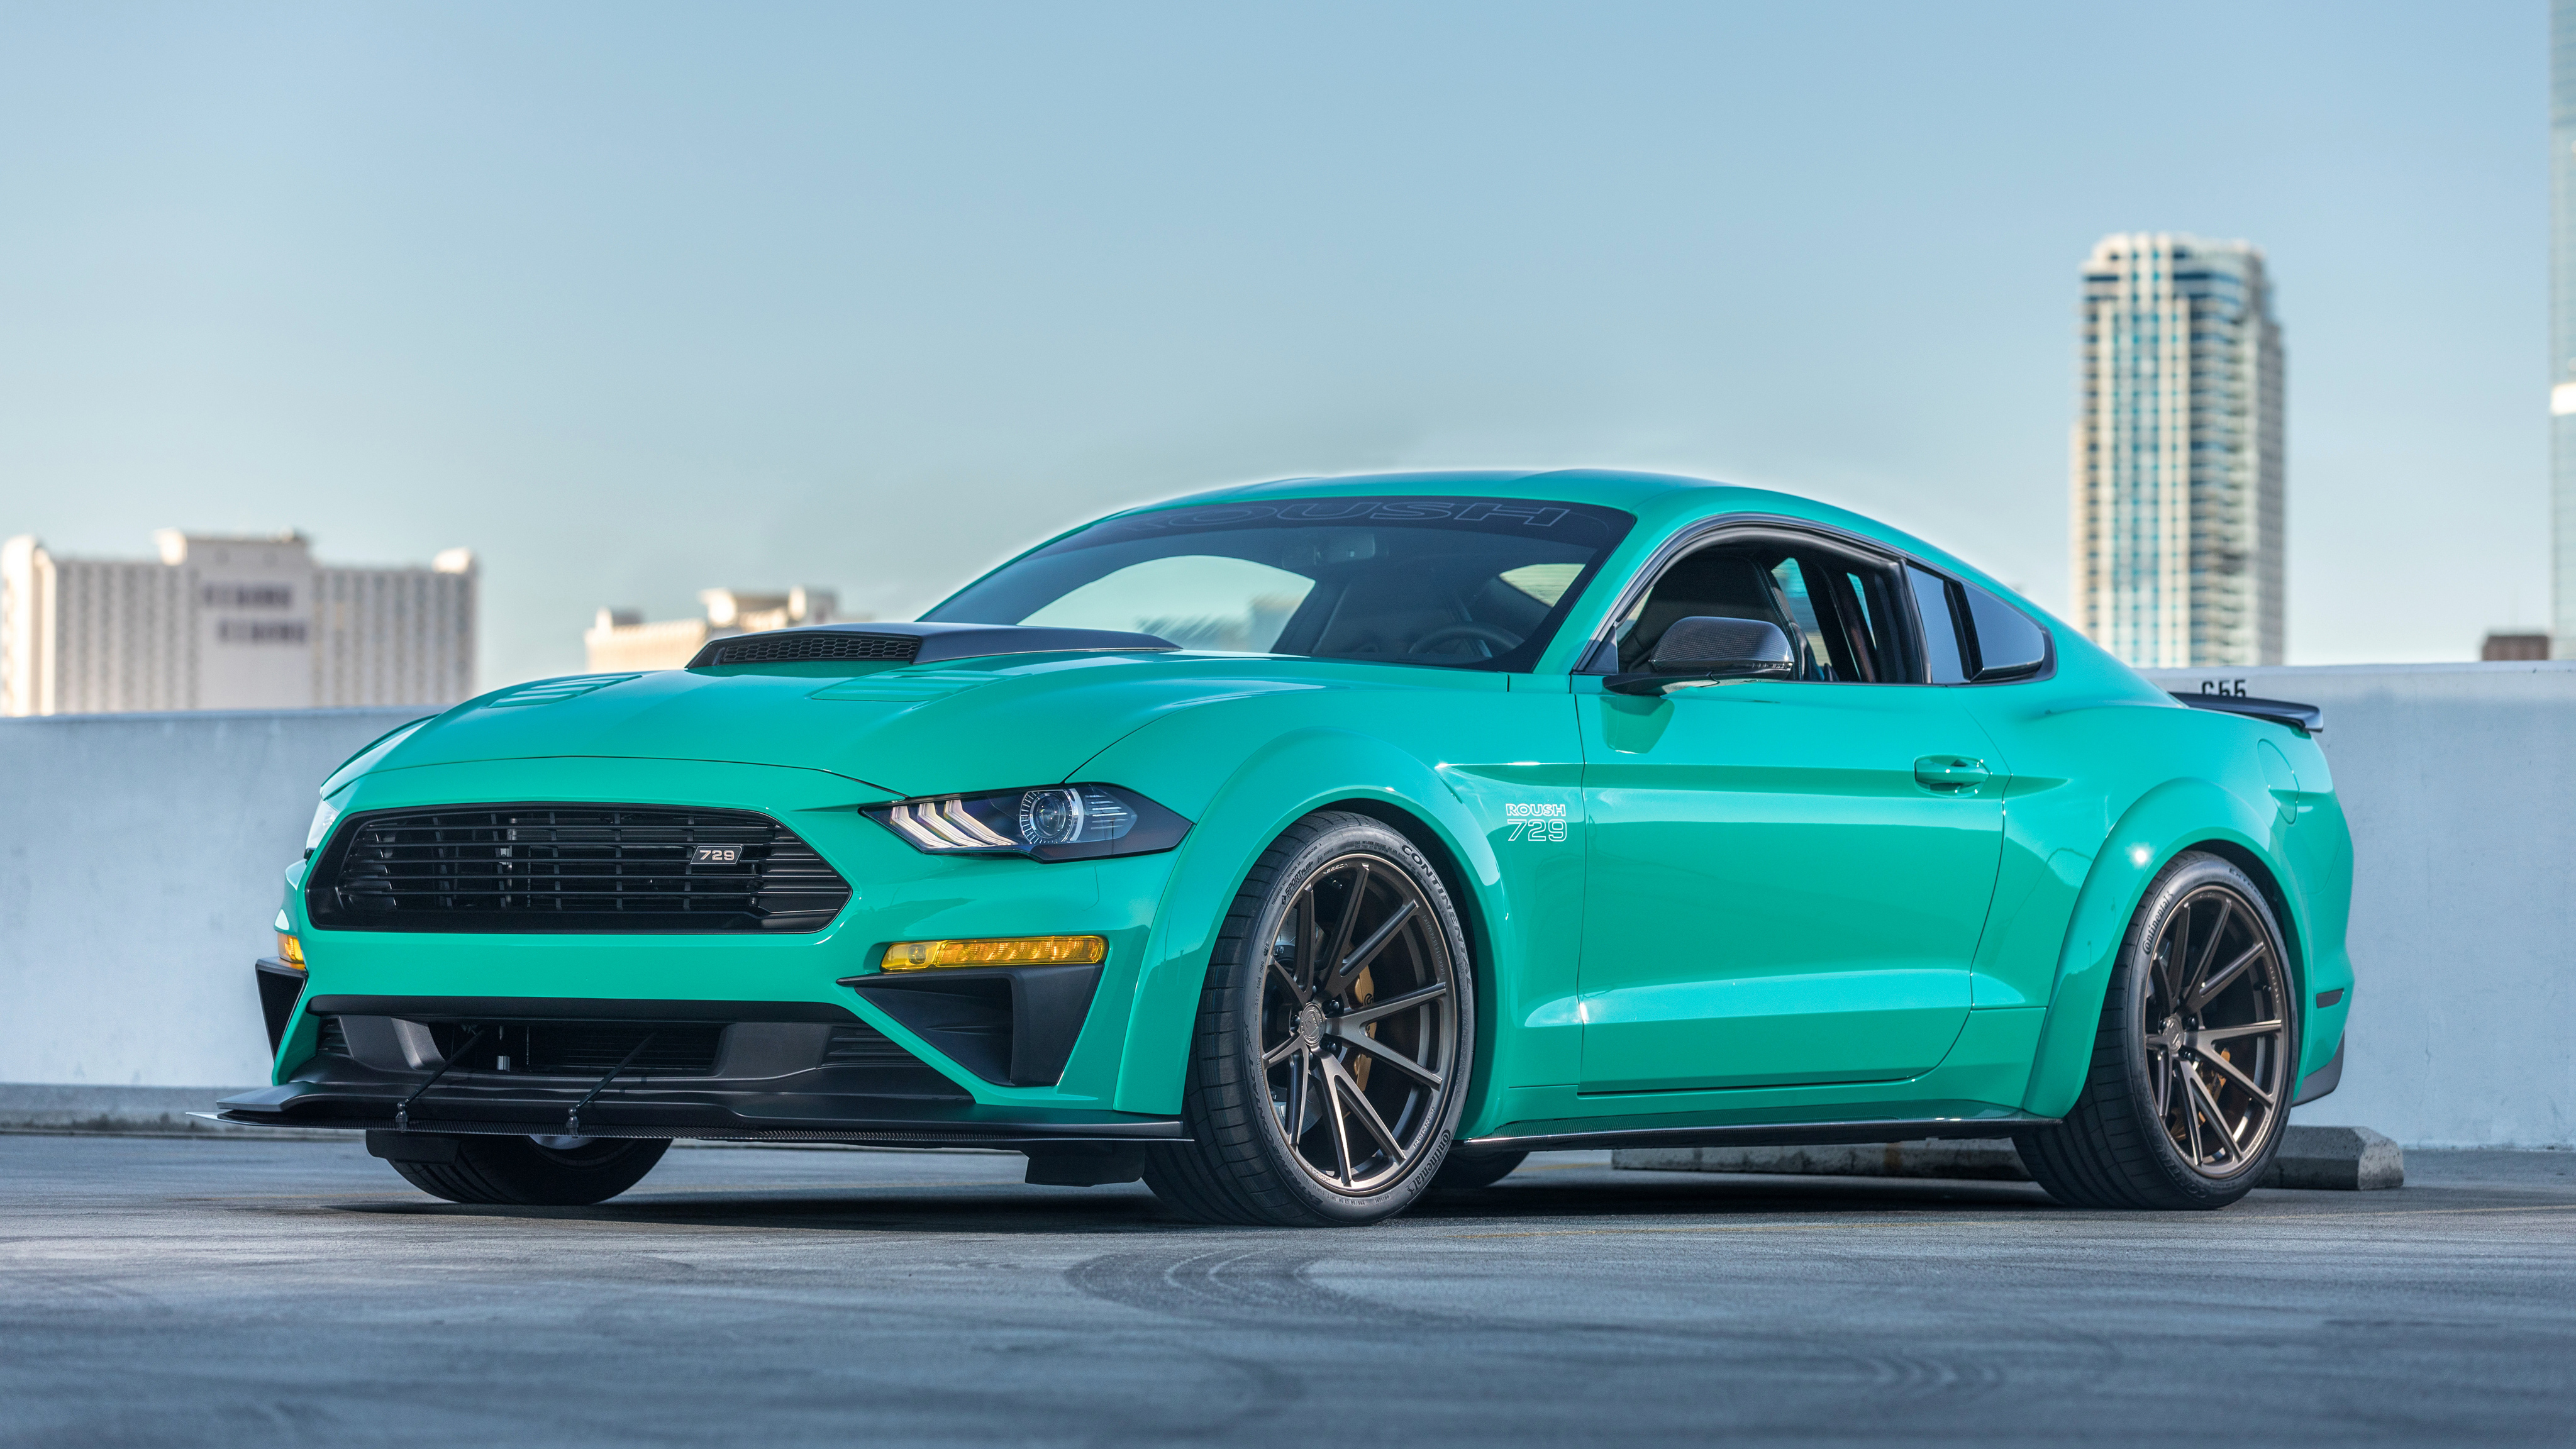 Ford Mustang Wallpaper Pc